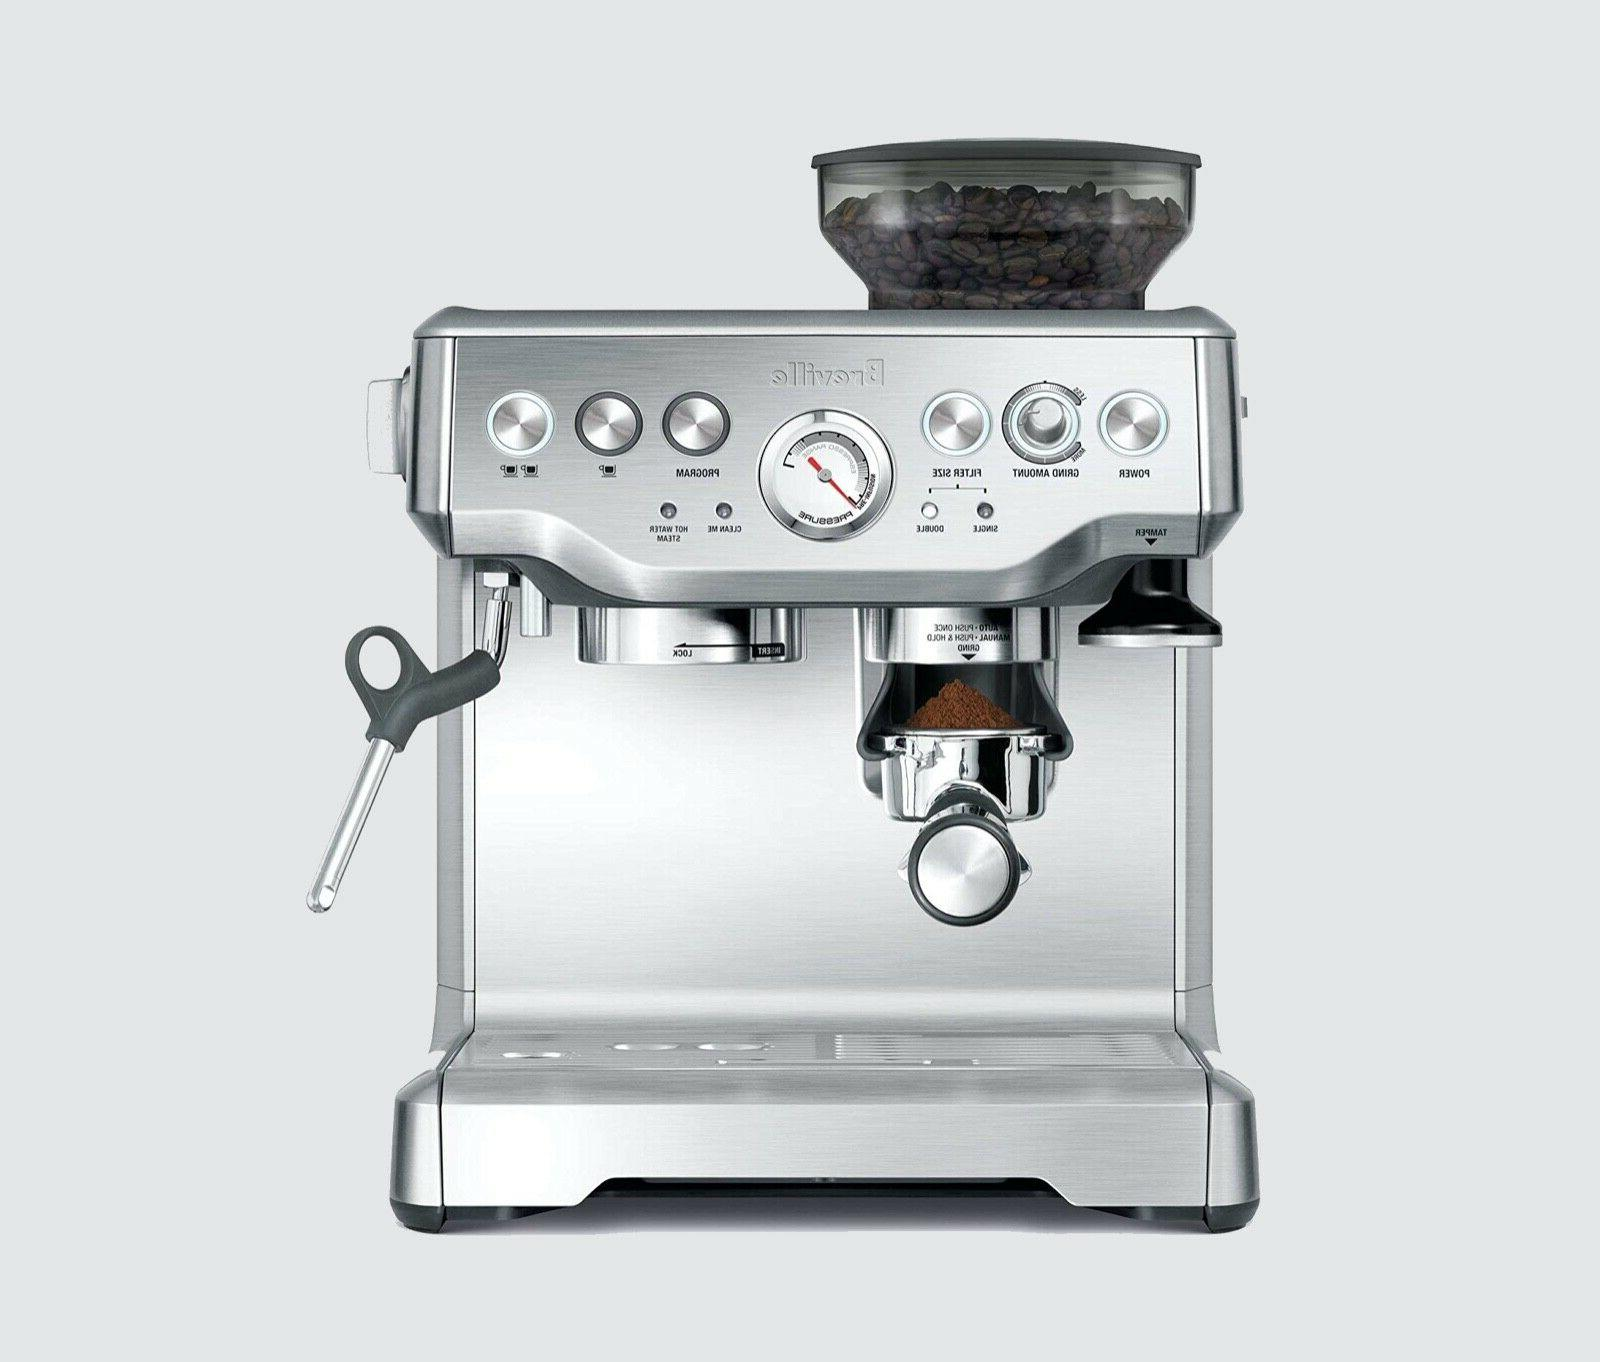 barista express bes860xl 2 cups espresso machine